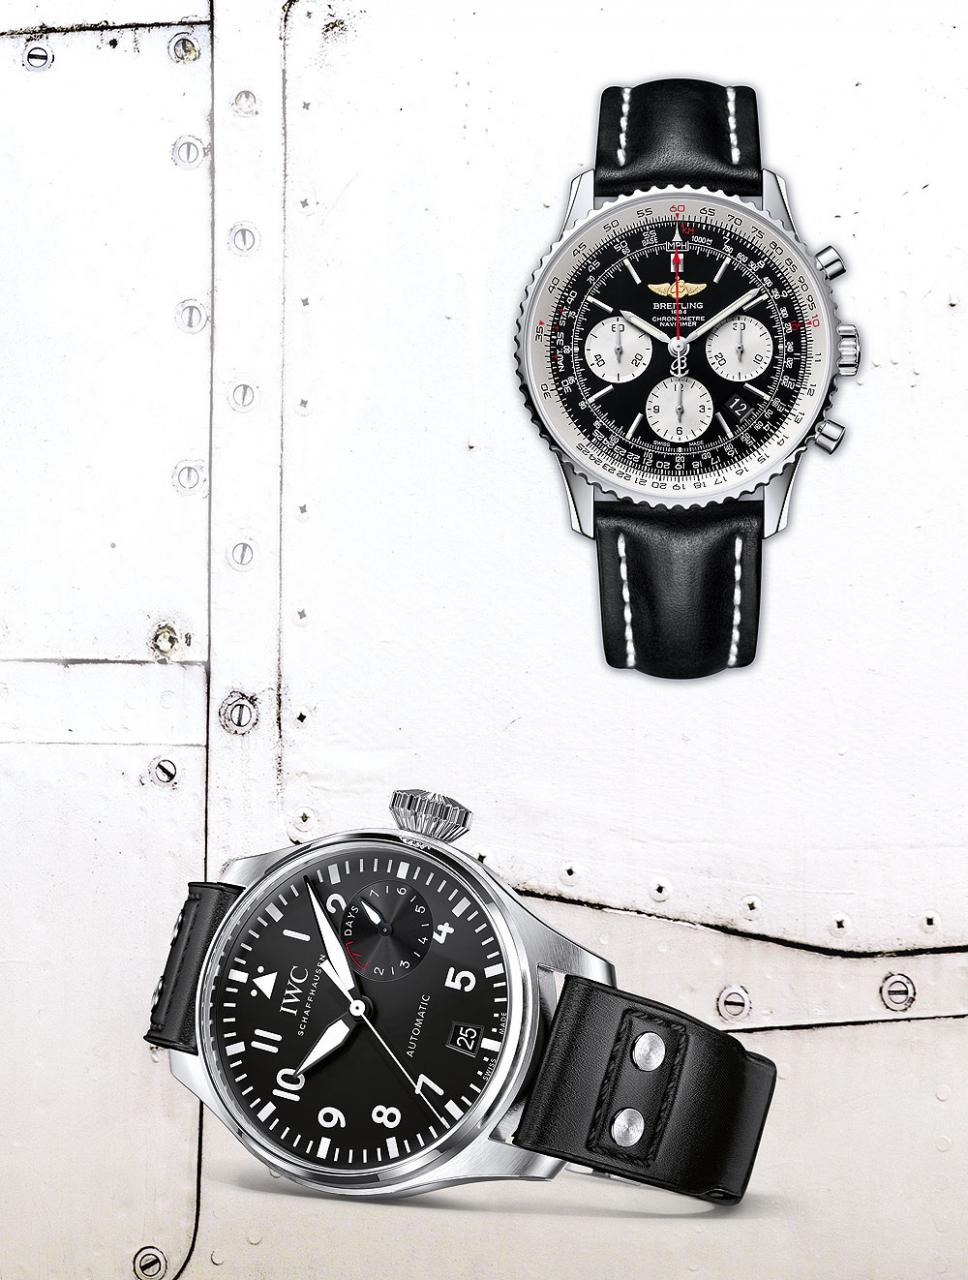 Breitling Navitimer & IWC Big Pilot Watch